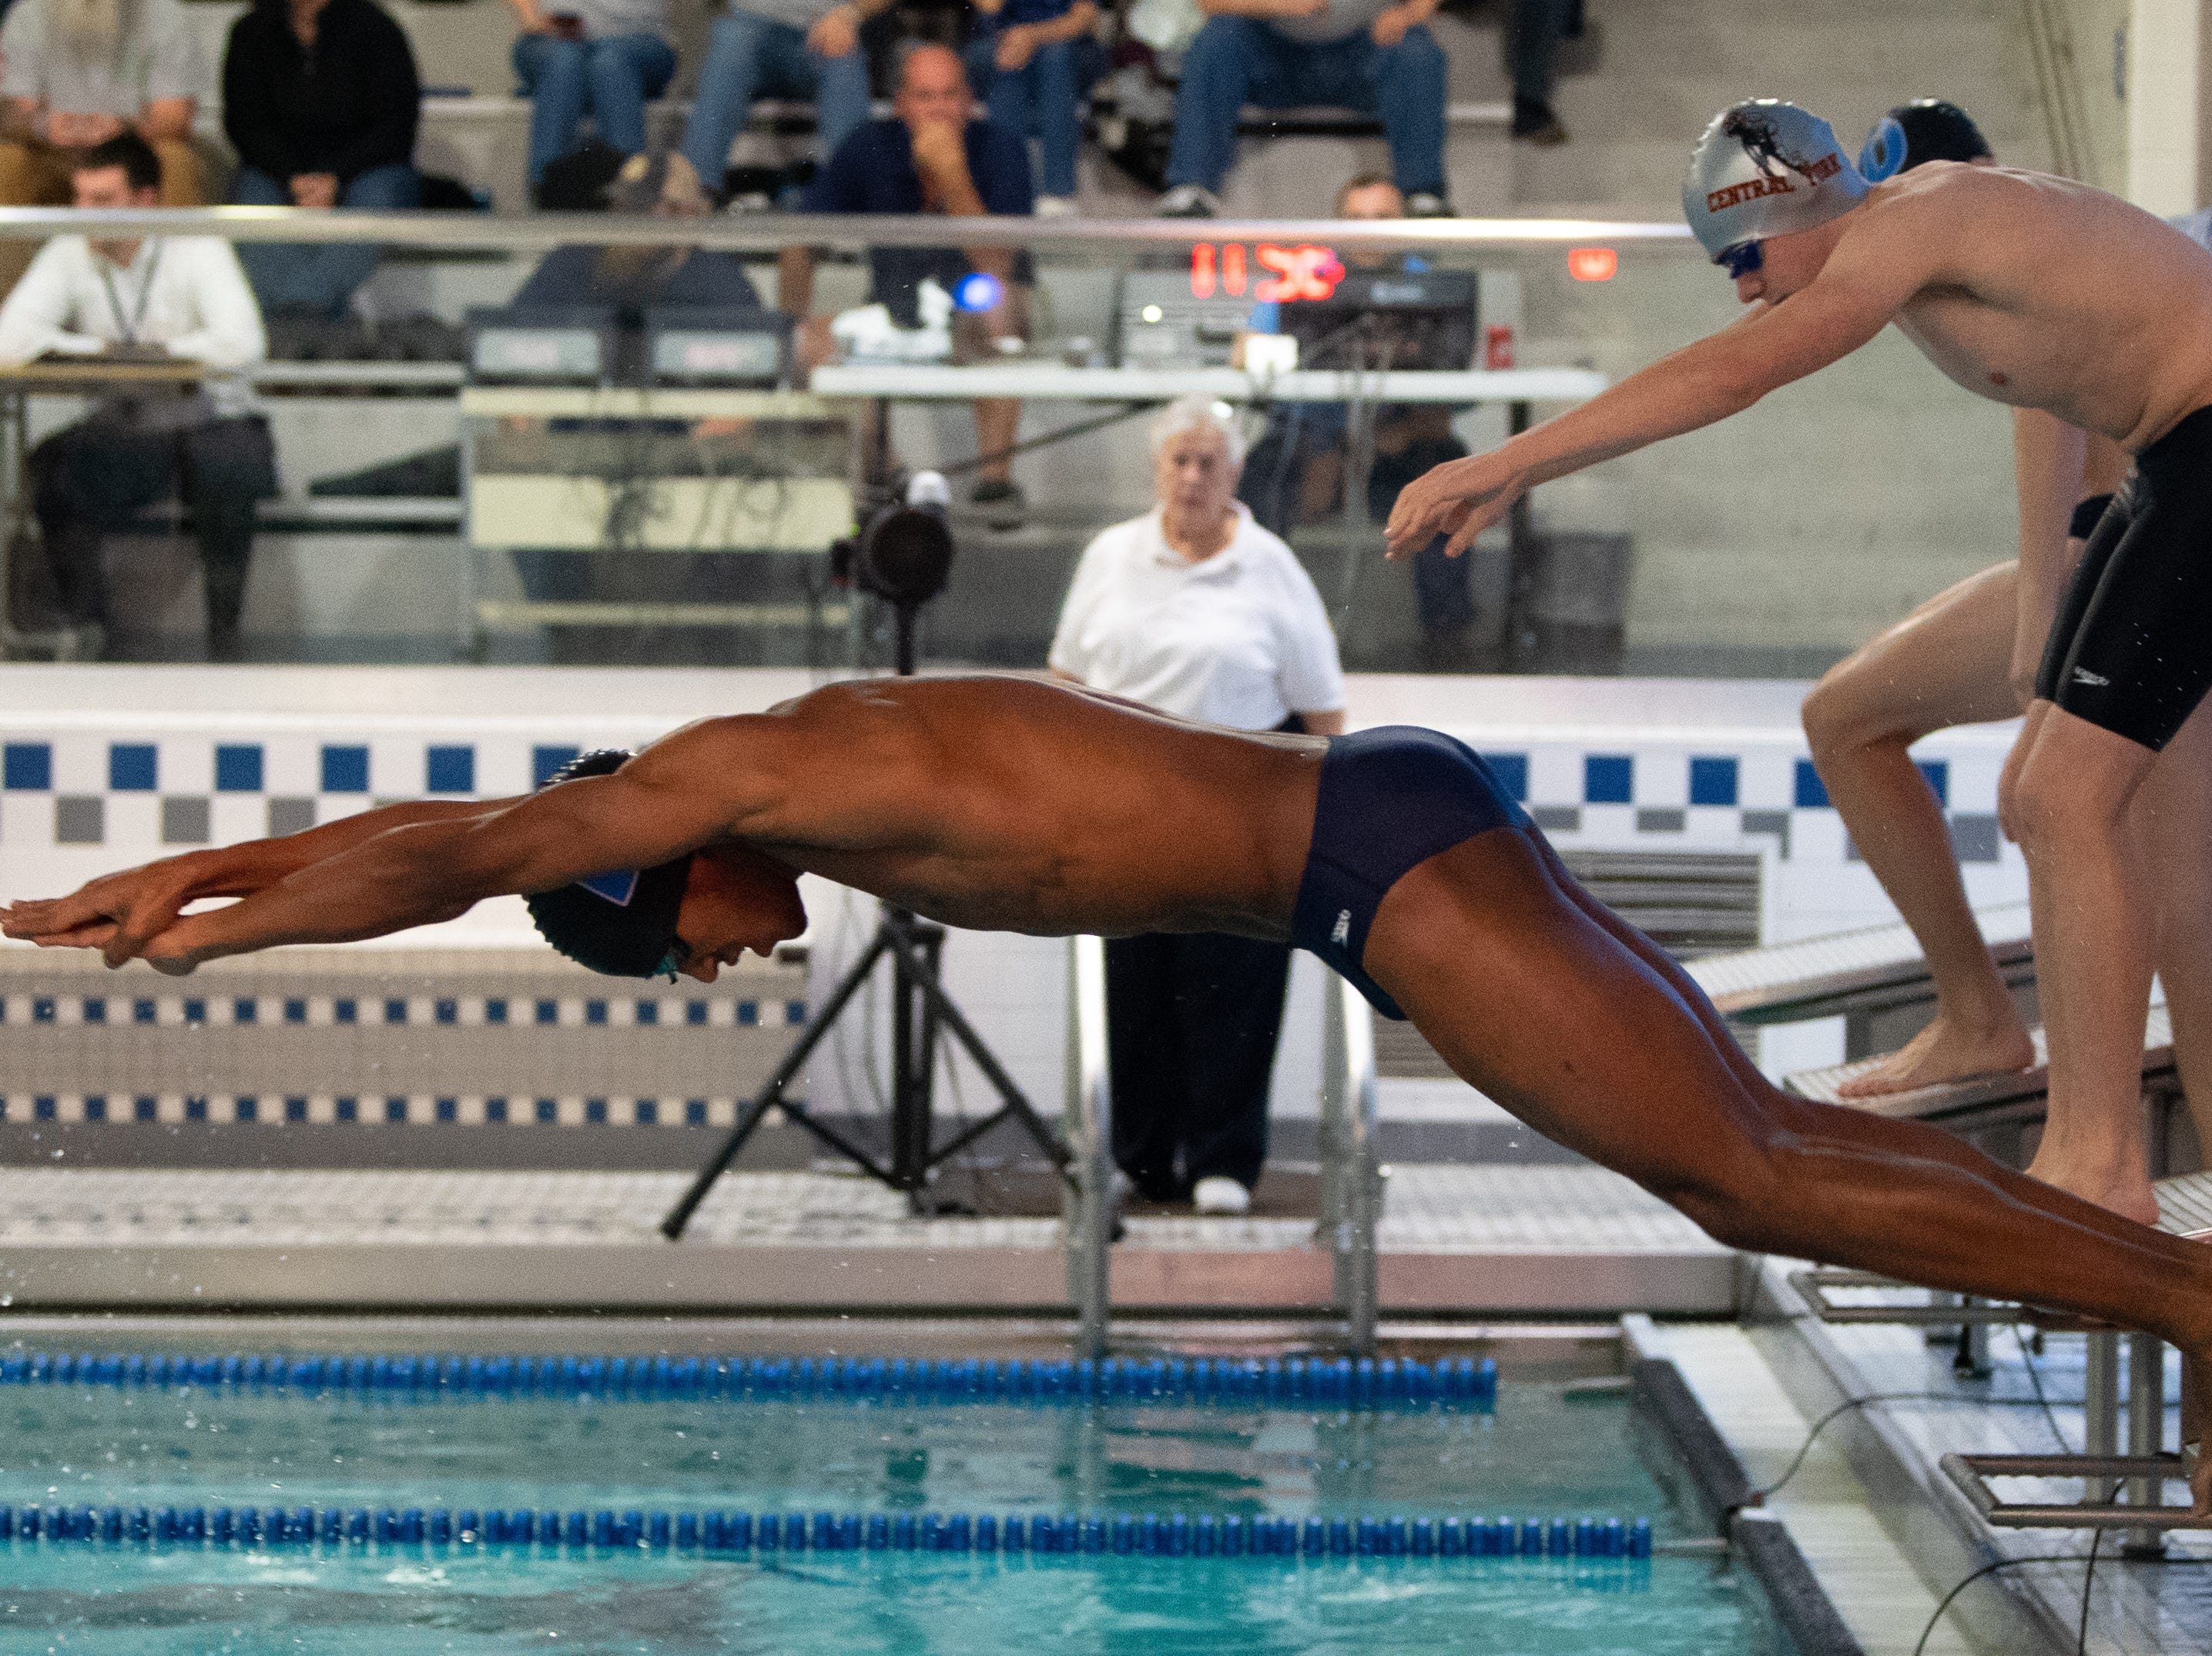 Jaden Rivera looks to maintain the lead during the boys' and girls' swim meet between Dallastown and Central York at Dallastown Area High School, January 10, 2019. The Panthers defeated the Wildcats 93 to 77 and the Lady Panthers defeated the Lady Wildcats 96 to 74.